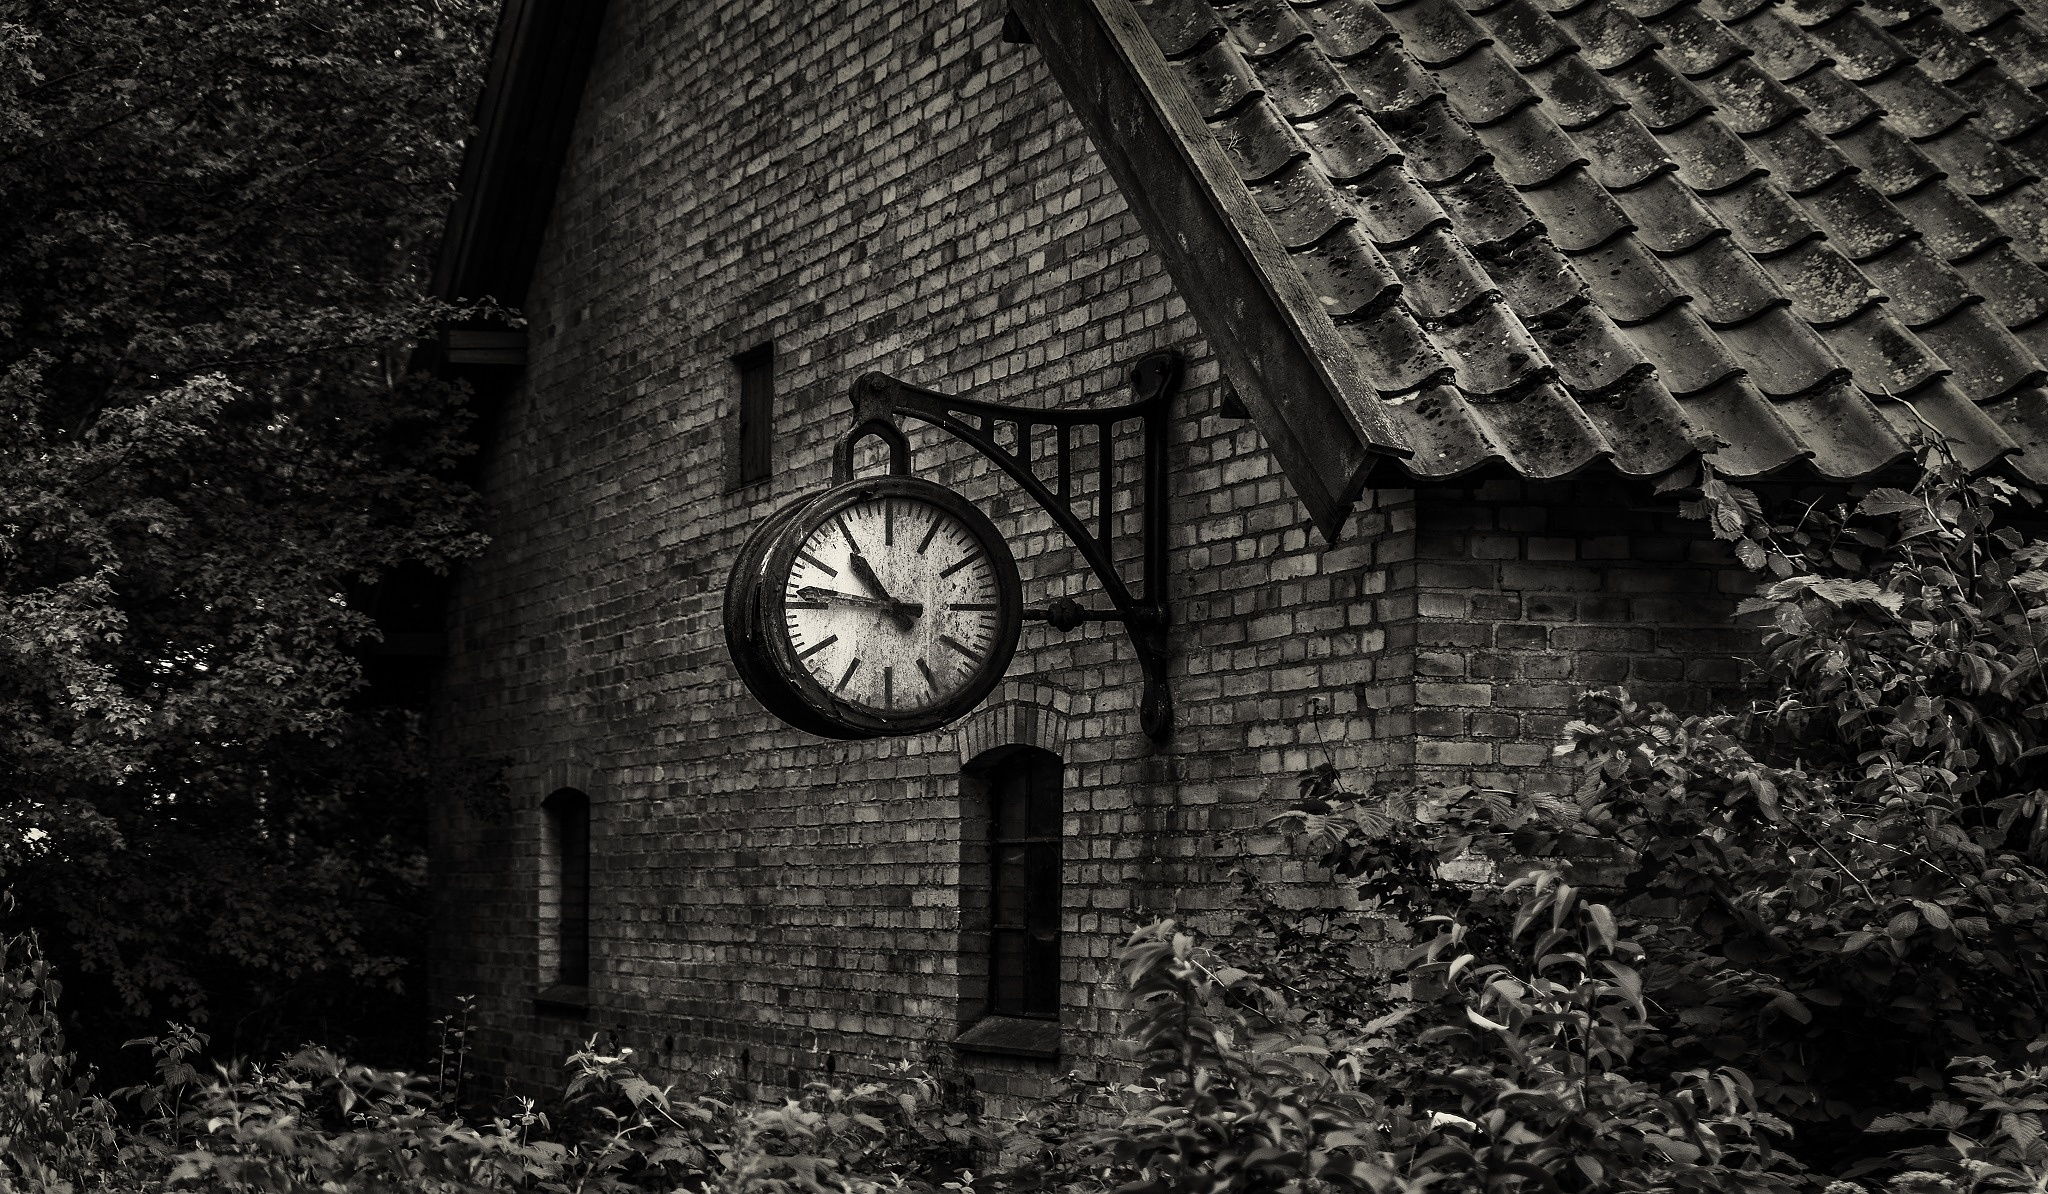 TiME by Mikkel